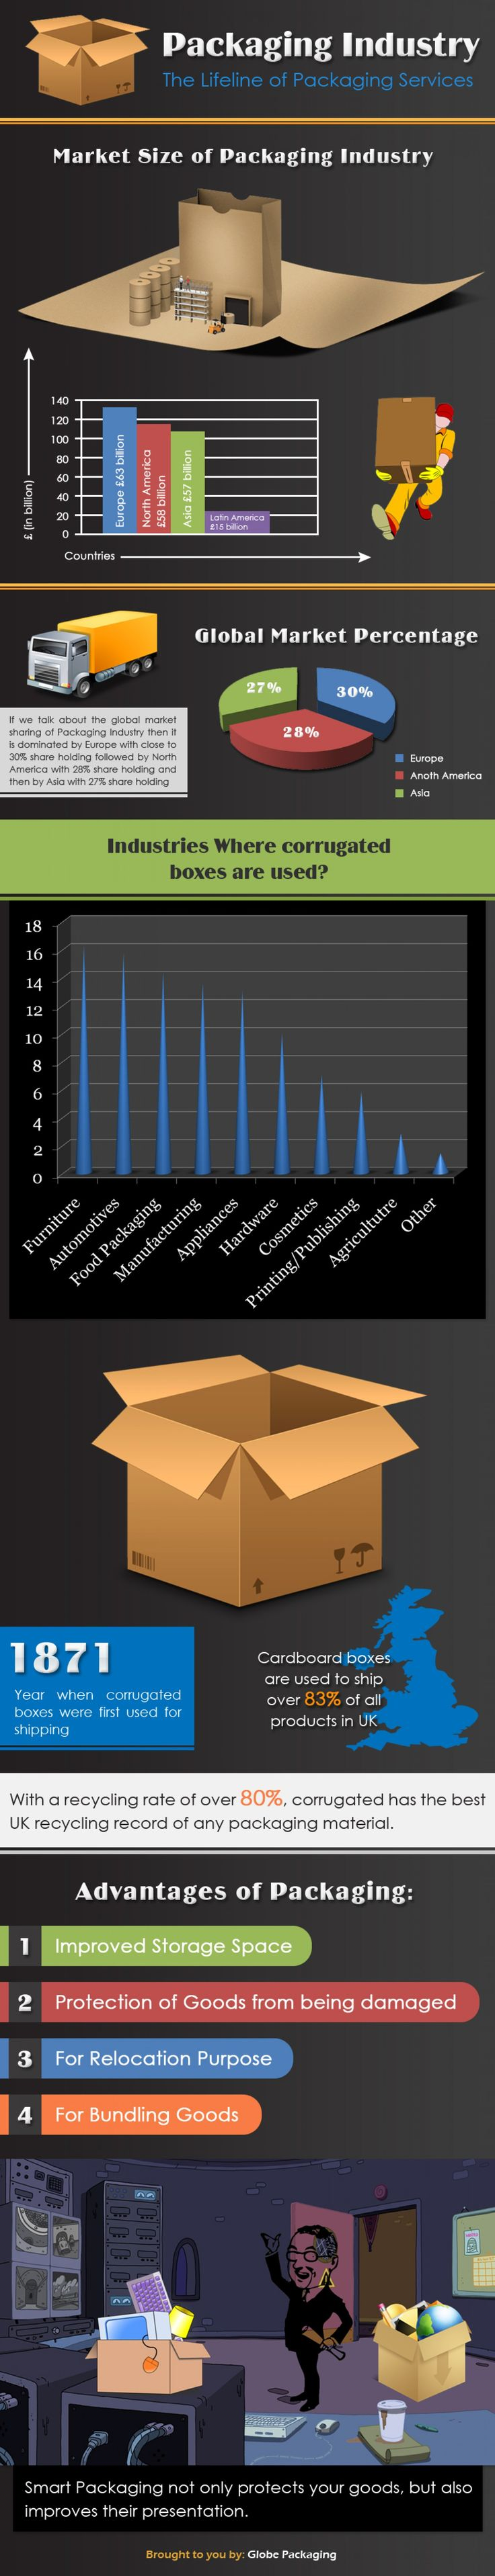 Packaging Industry Key Stats, Advantages and Some Facts Infographic